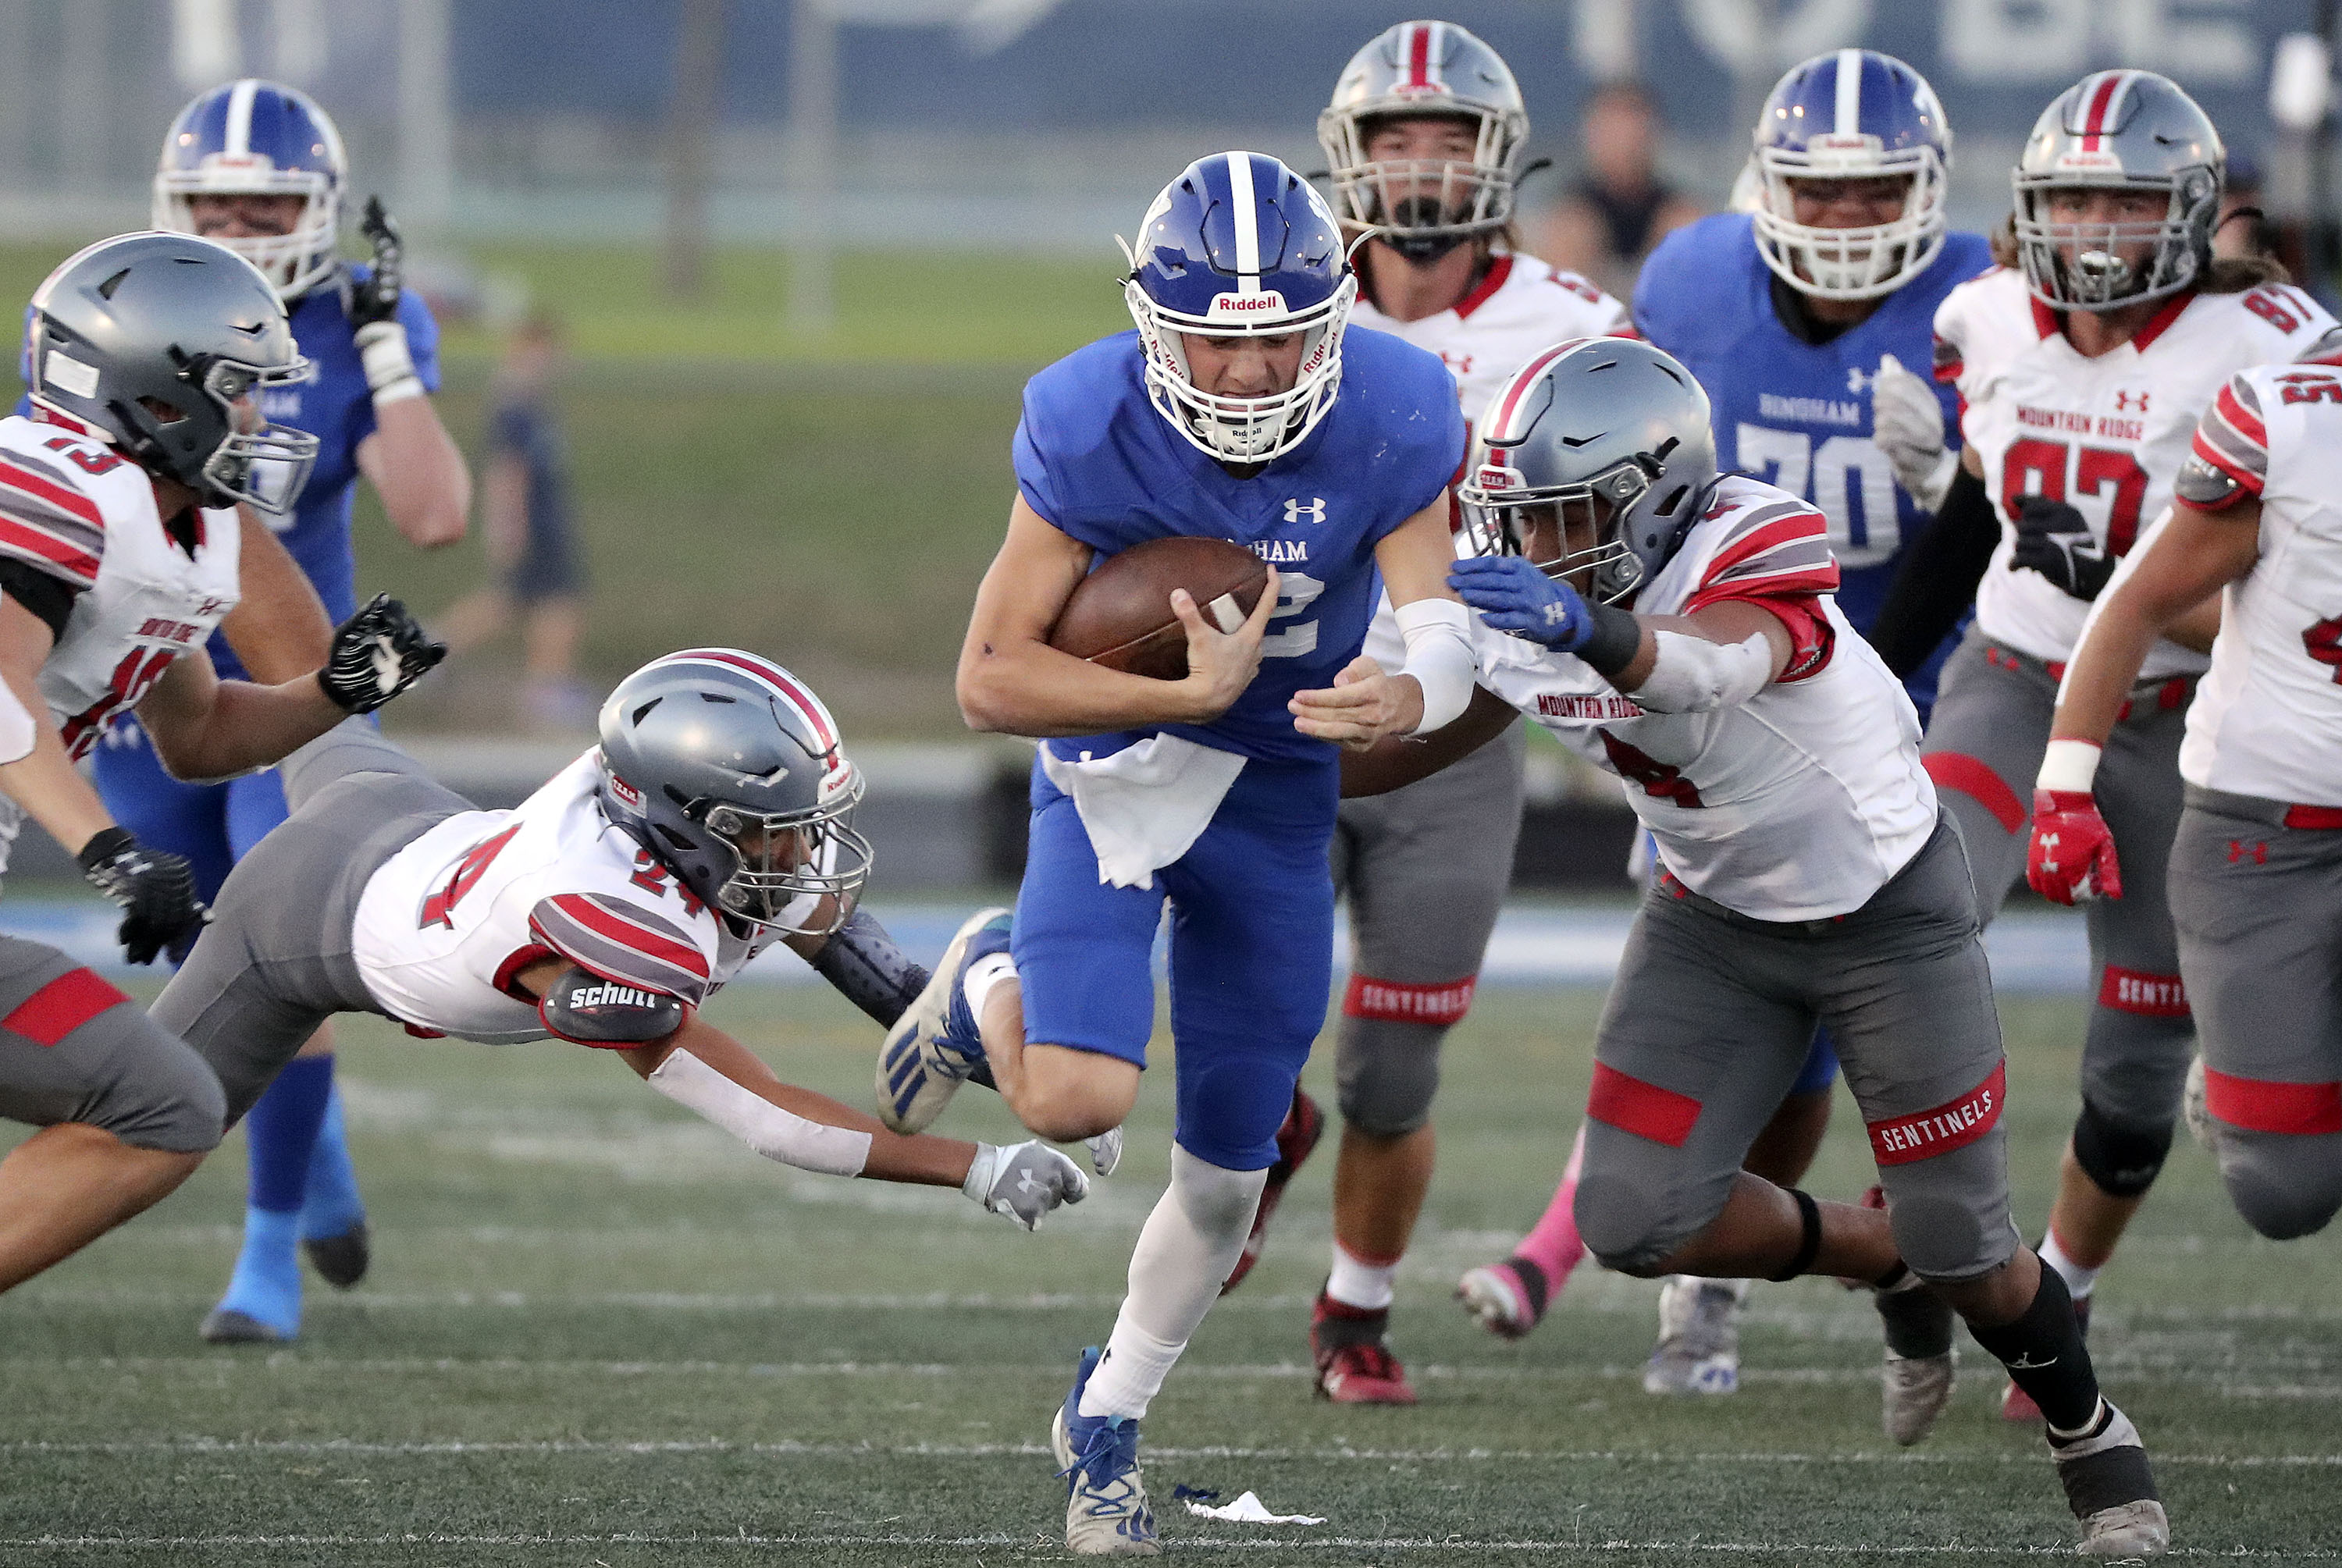 Bingham's Dallen Martinez gets tackled by Mountain Ridge's Chase Leiataua (24) and DeMarco Brimmage (4)